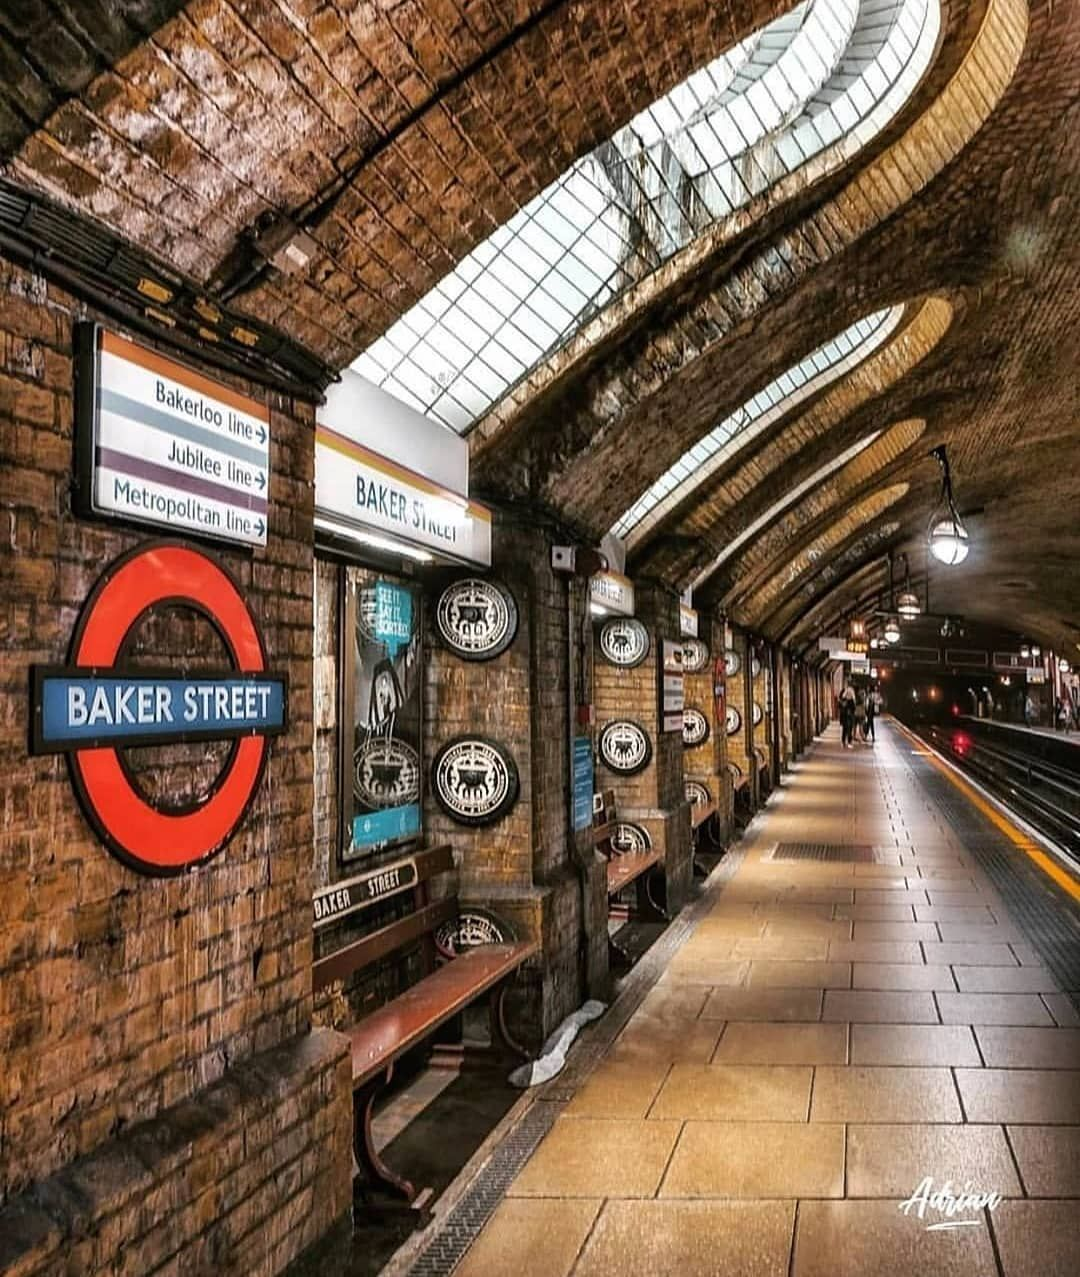 Alexander Londoner On Instagram Monday Mornings Are The Worst Empty Tube Stops Are Rare To Come By London Underground Tube London Travel London Places